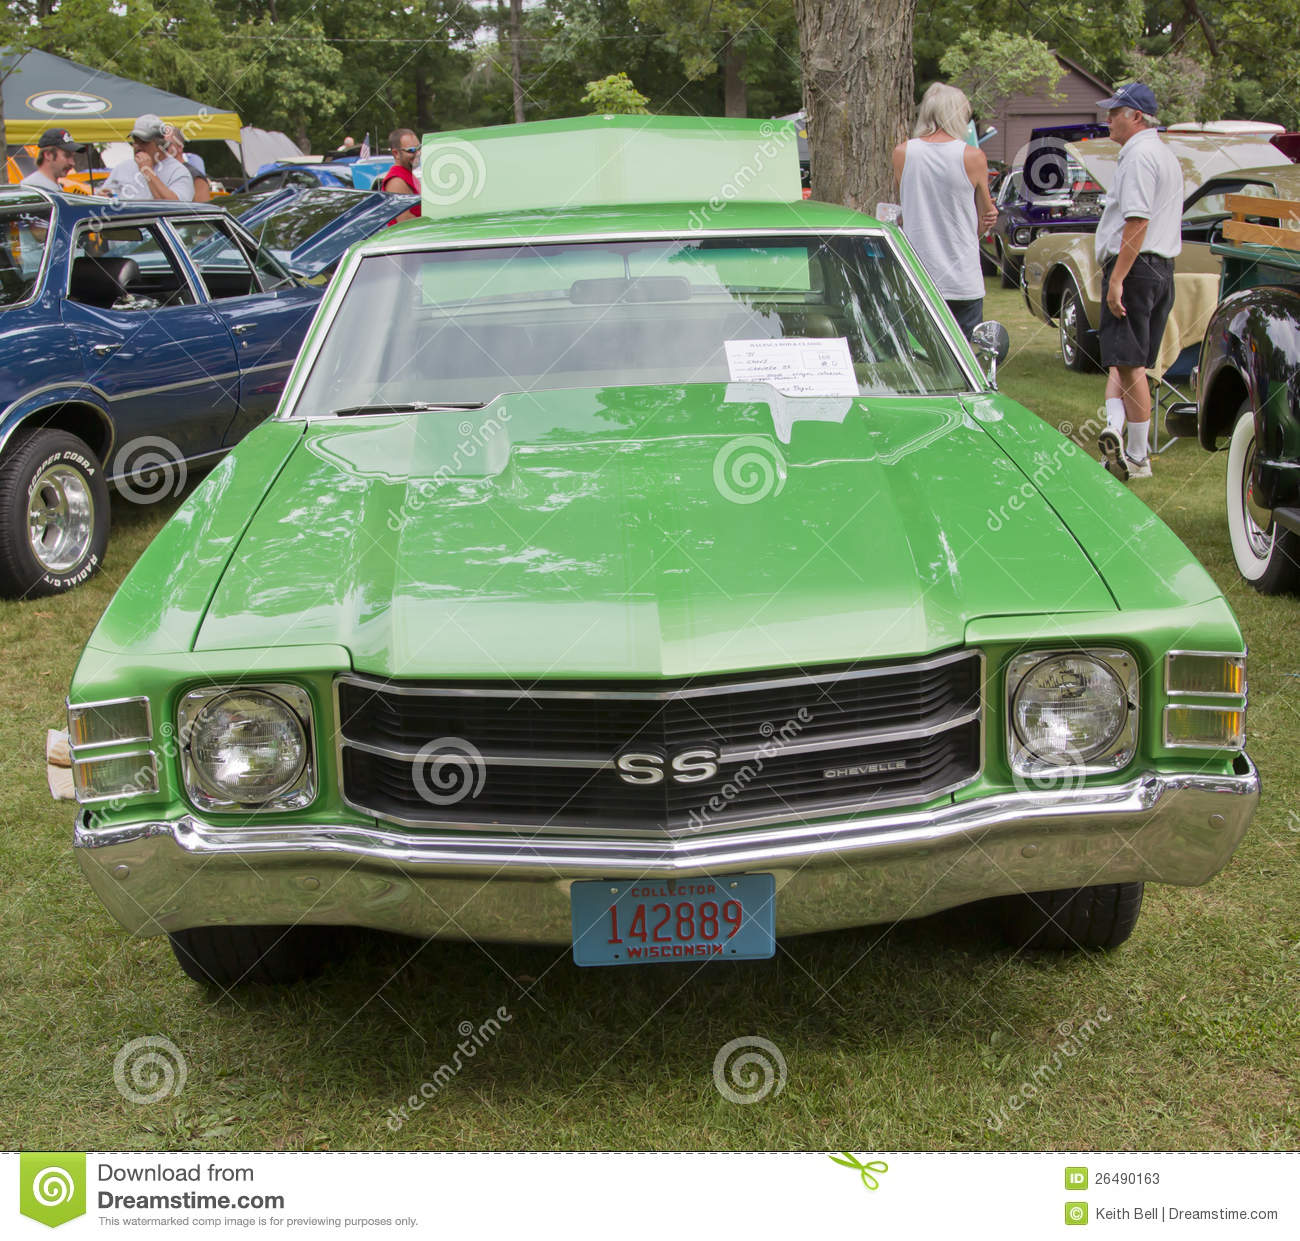 Waupaca Wi   August 25  Front Of 1971 Chevy Chevelle Car At The 10th